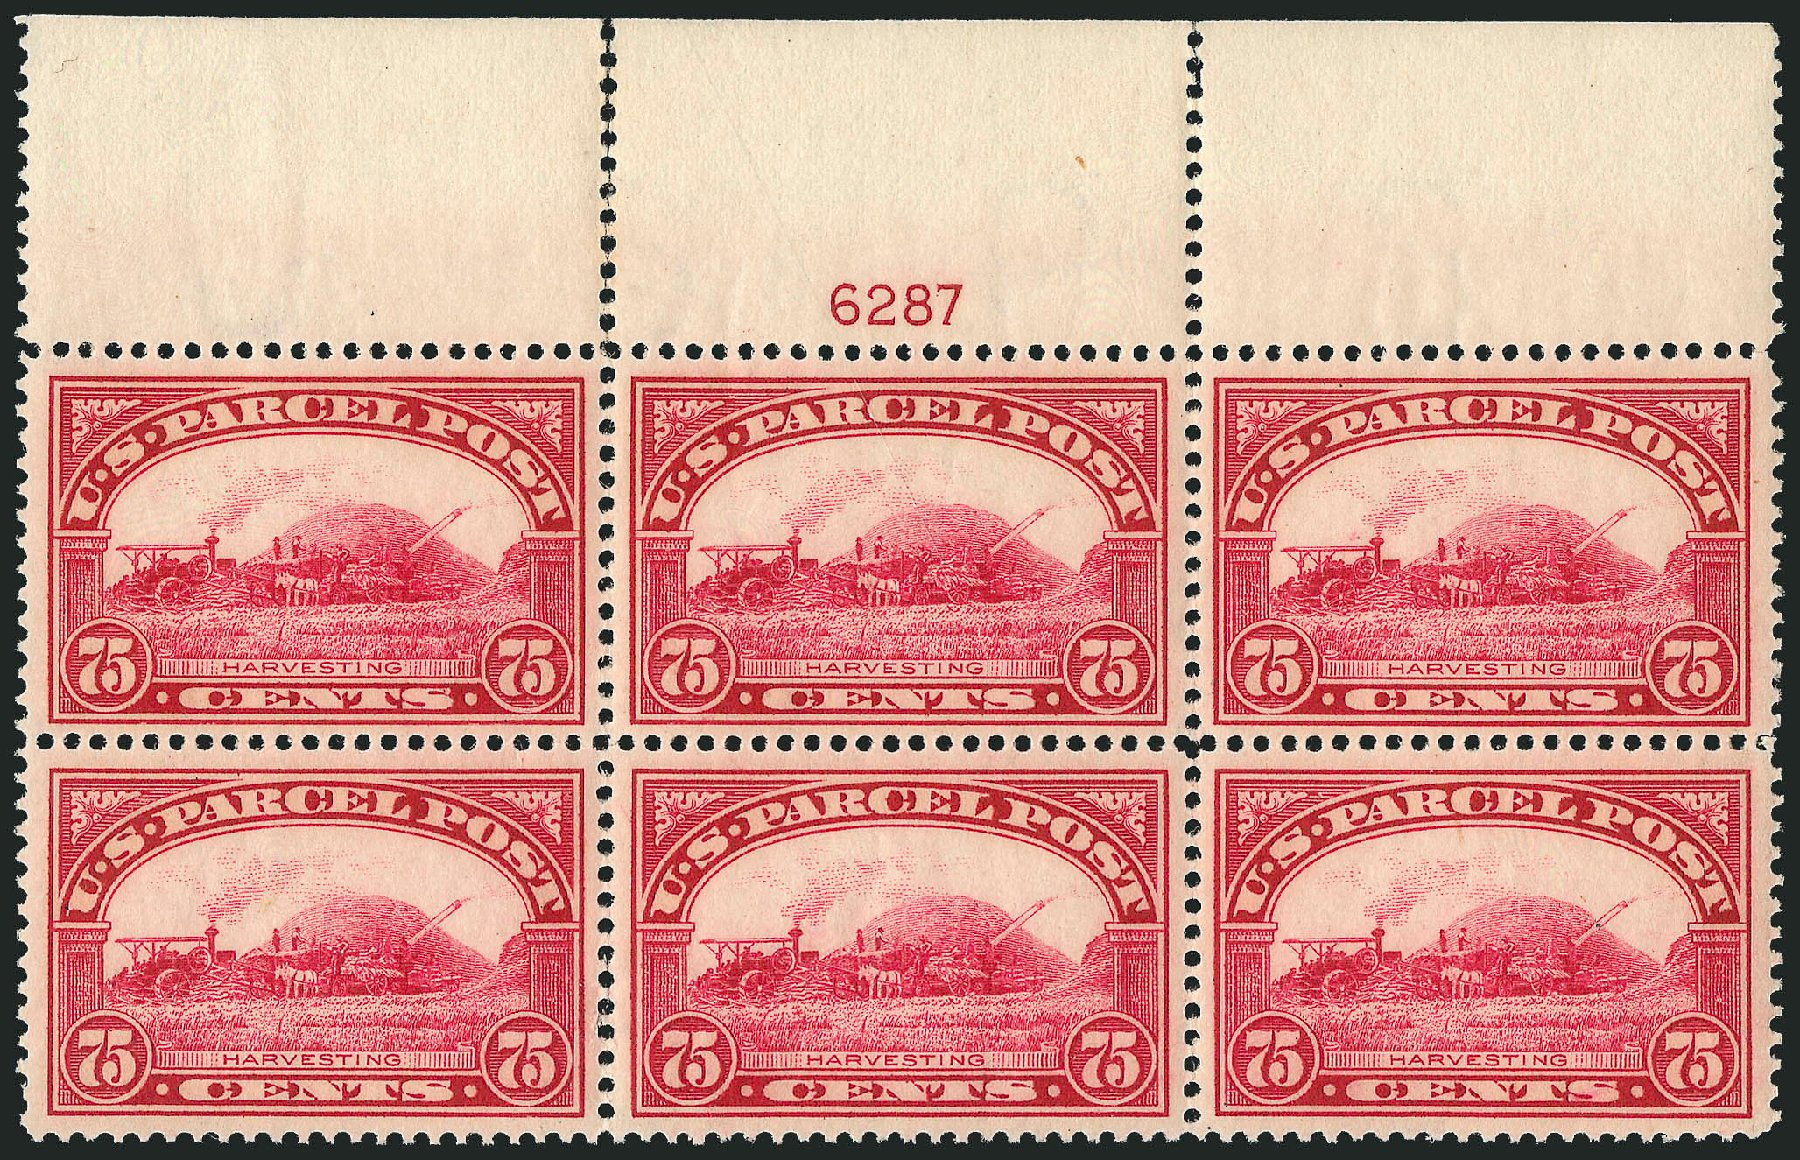 US Stamp Price Scott Catalogue #Q11: 1913 75c Parcel Post. Robert Siegel Auction Galleries, Mar 2015, Sale 1094, Lot 293